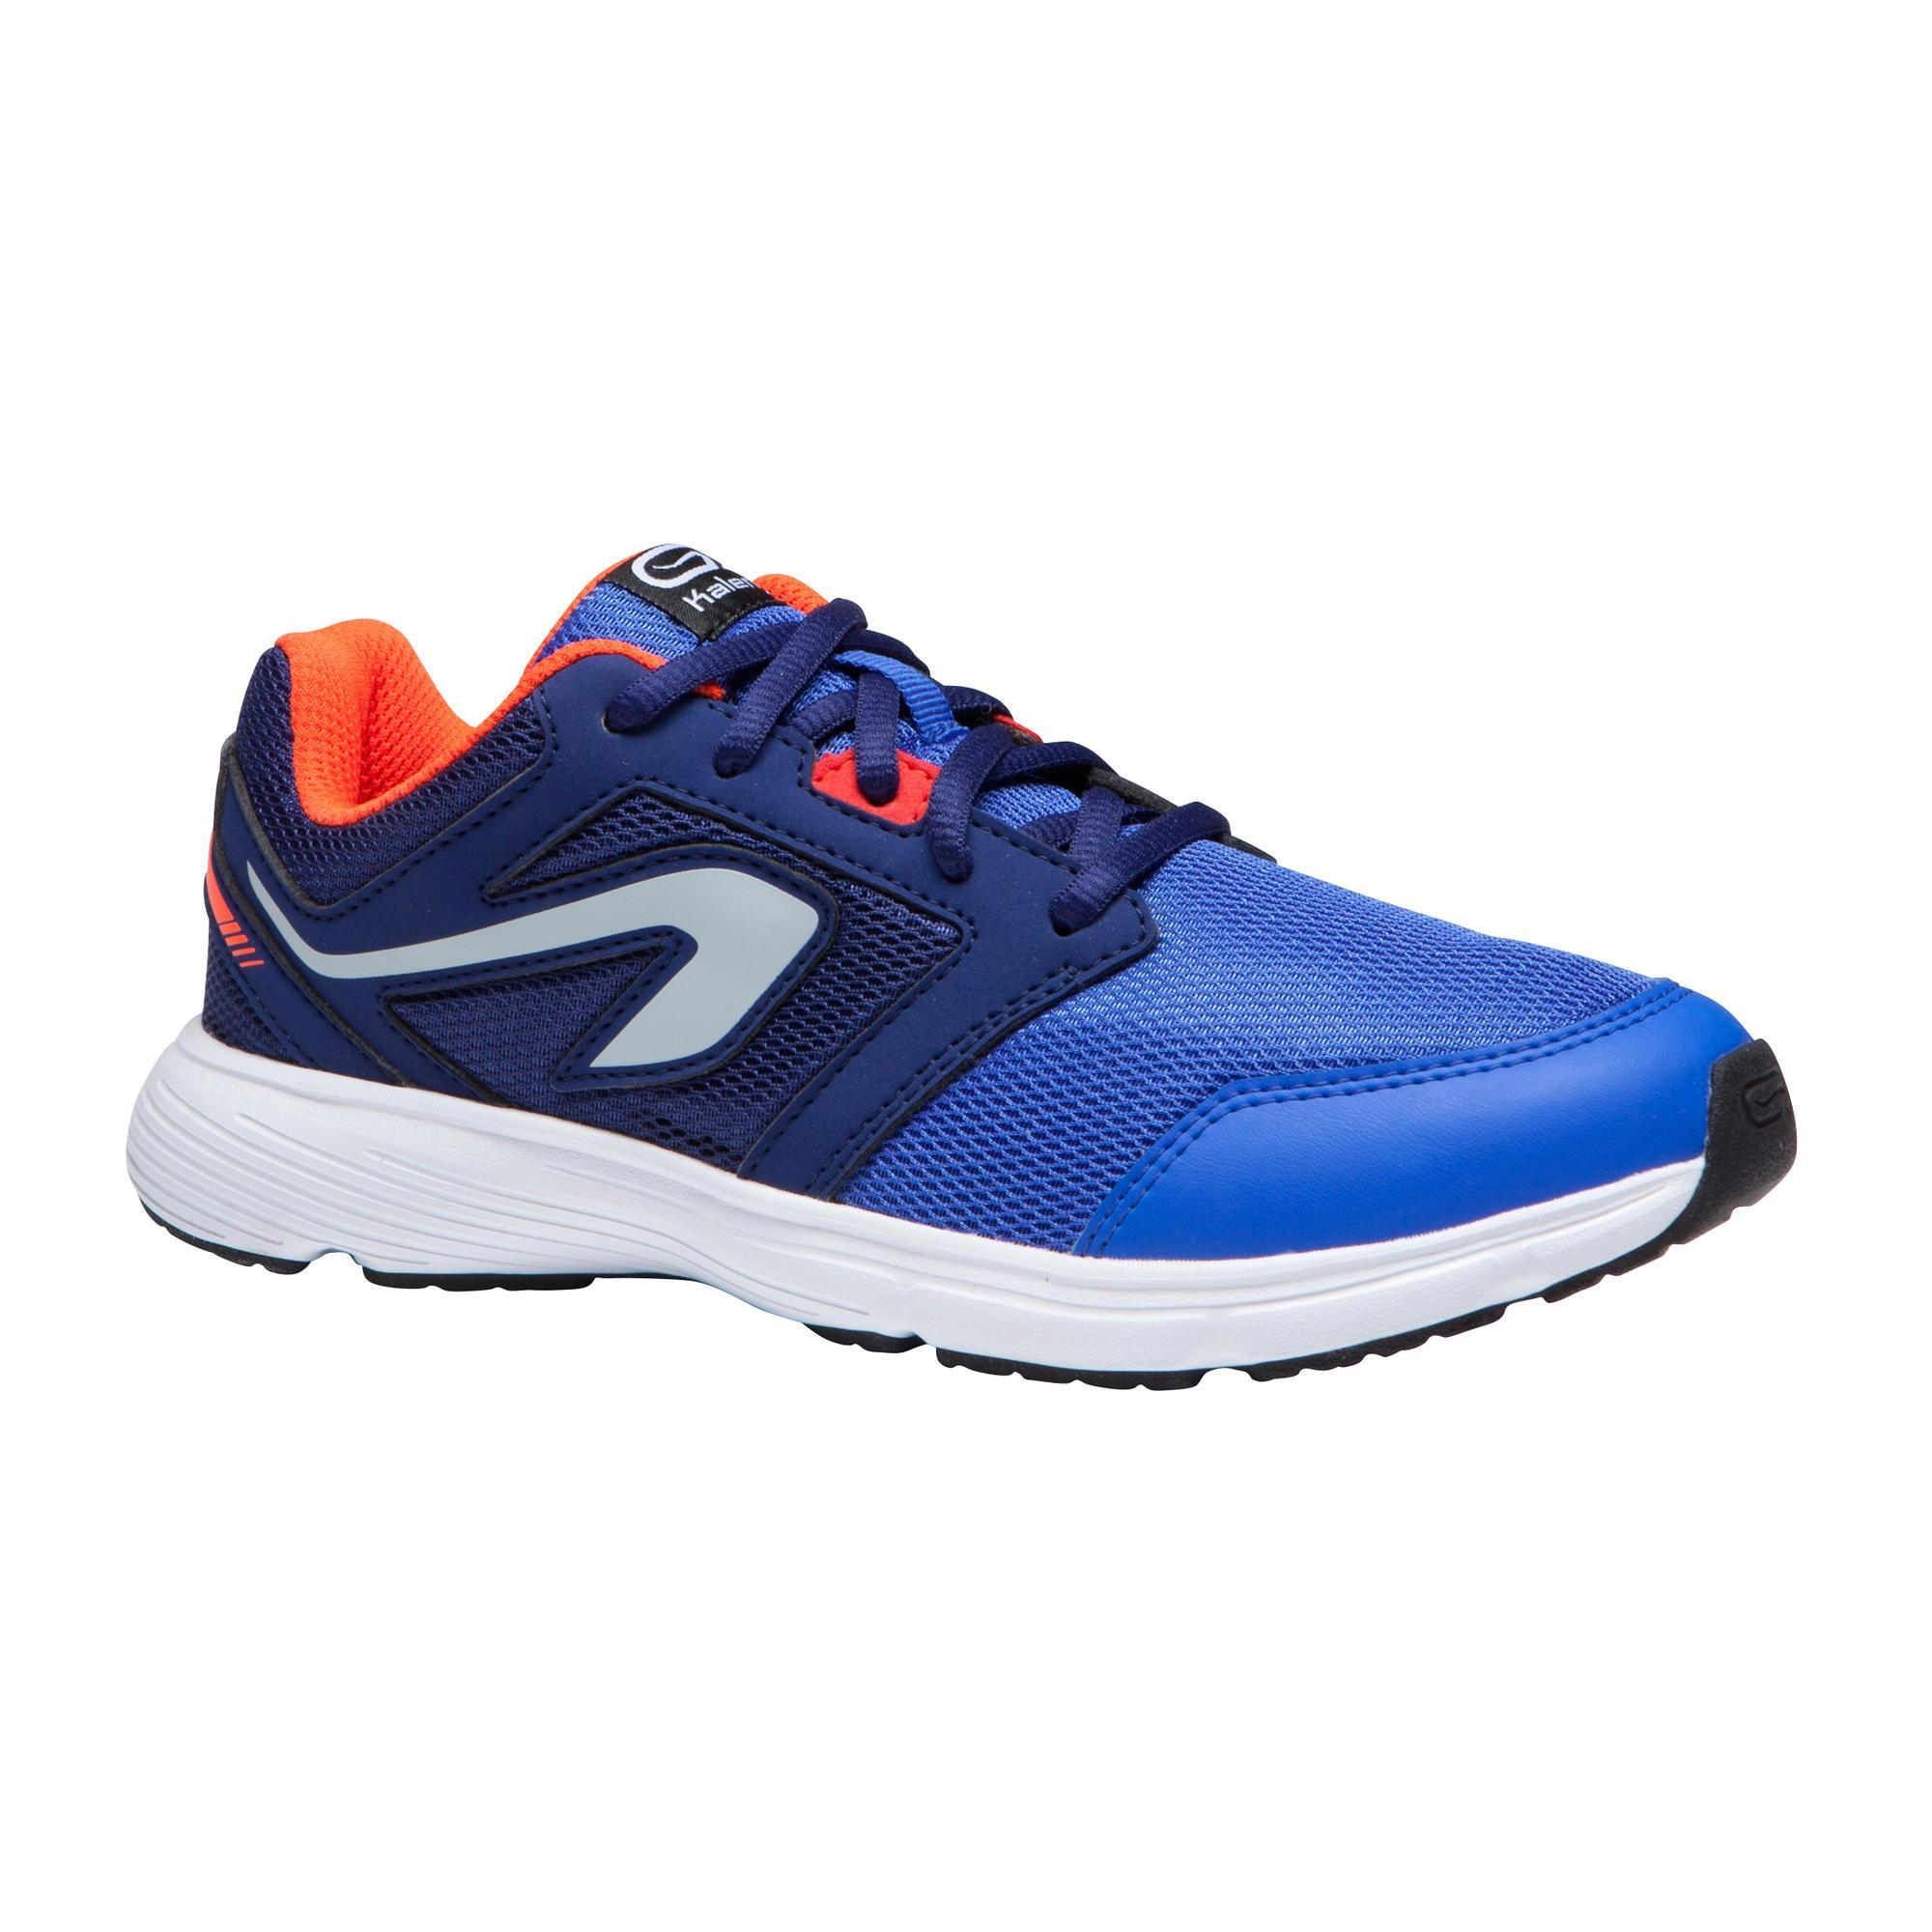 Kalenji Atletiekschoenen kinderen Run Support veters blauw/fluorood